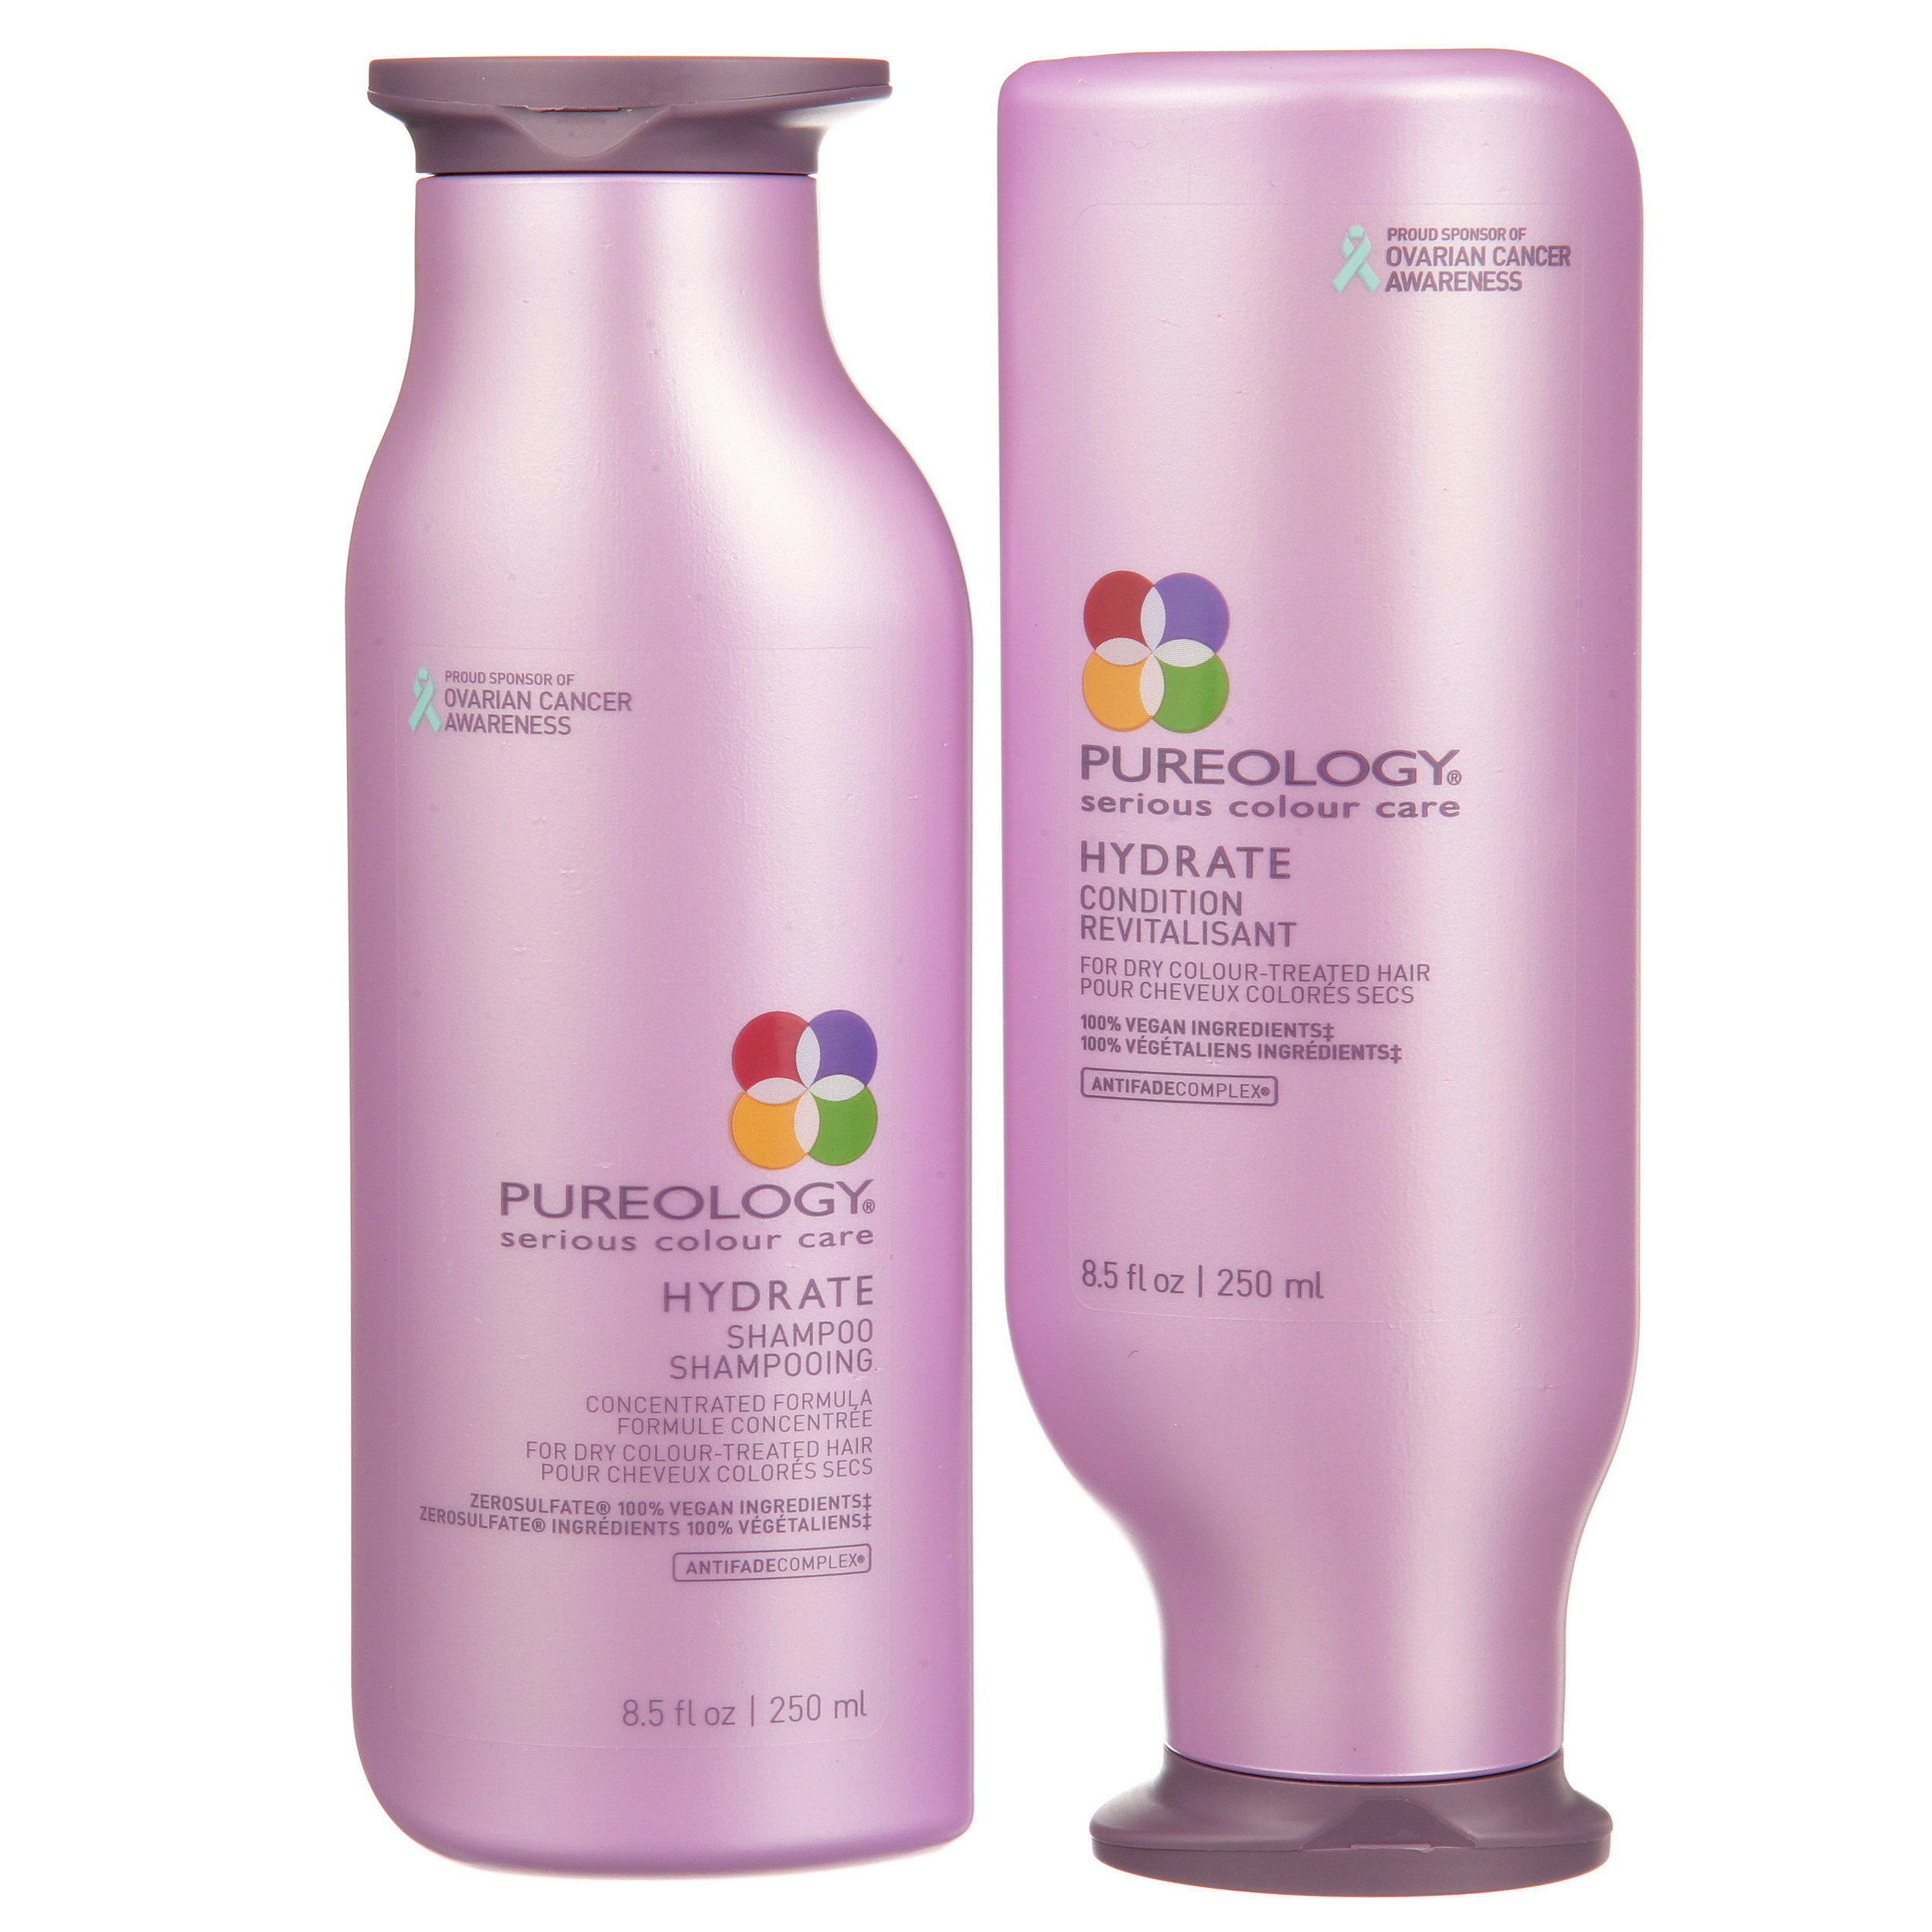 The shampoo and conditioner